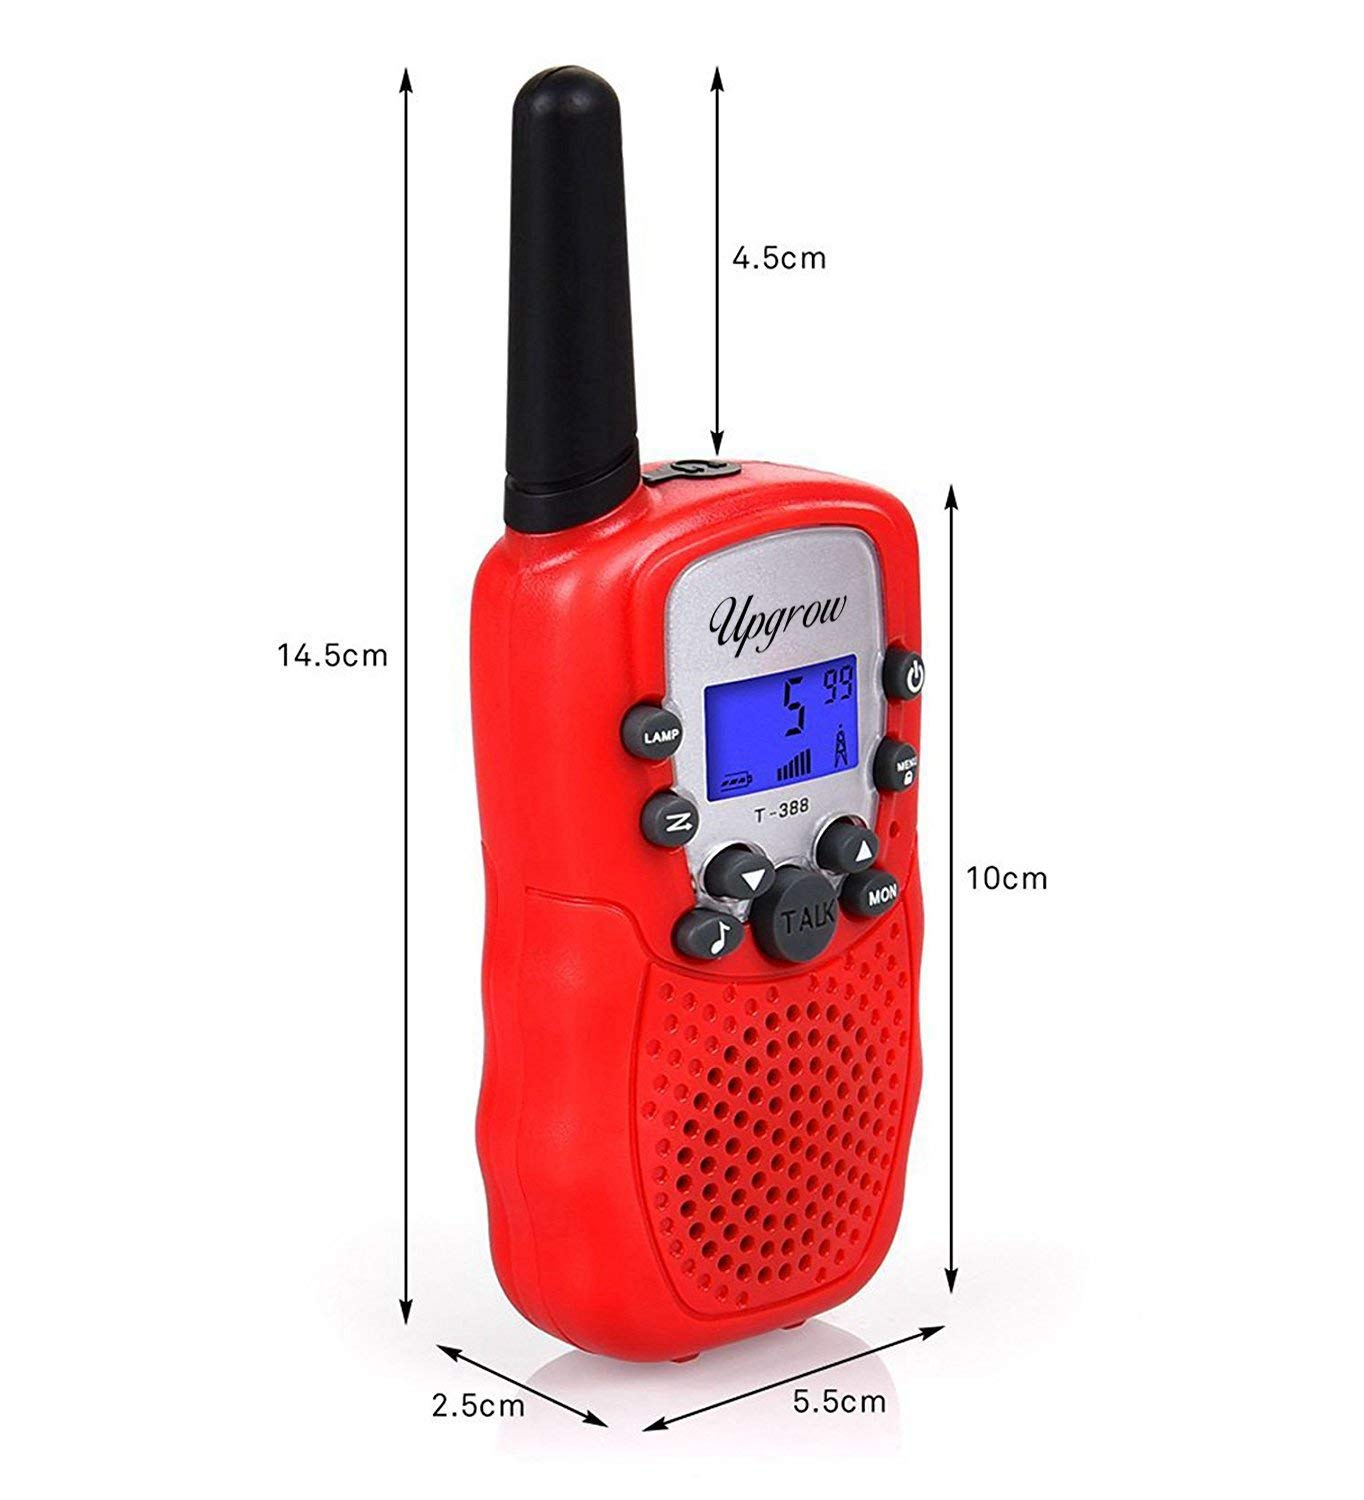 Upgrow Kids Walkie Talkies 22 Channel 0.5W FRS//GMRS Two Way Radios Long Range Walky Talky Handheld Walkie Talkie with LED Flashlight for Children Boys Girls Red